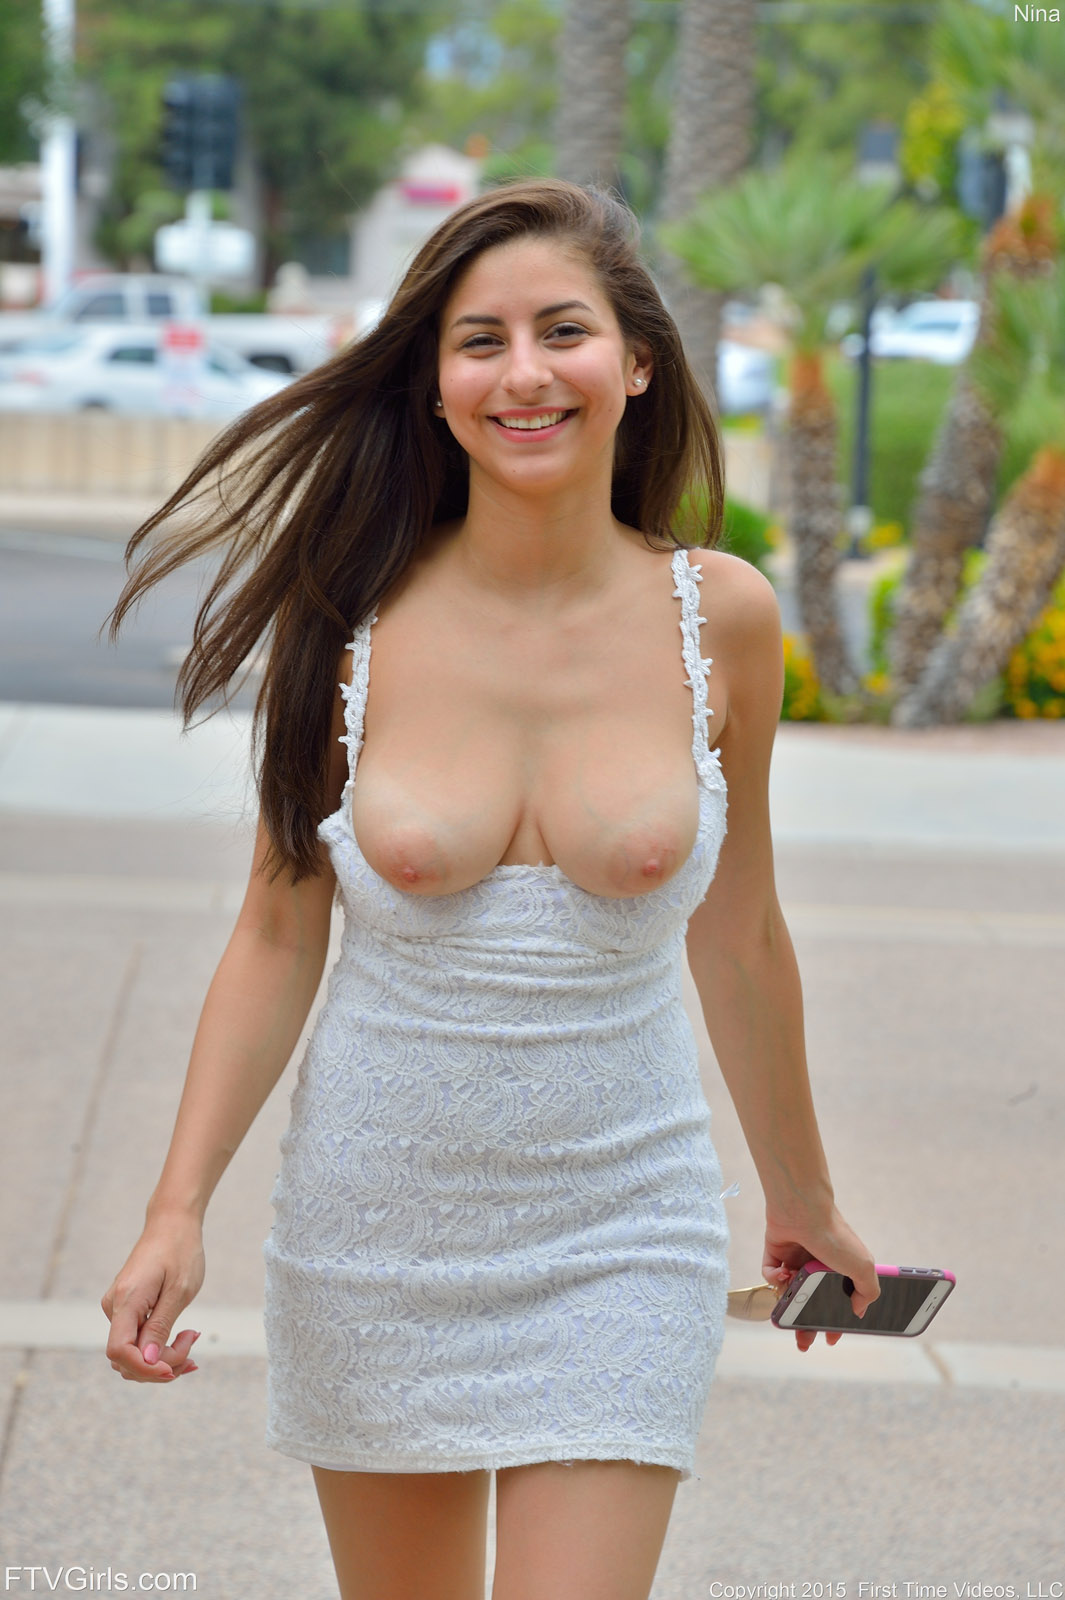 Ftv wearing a very short dress that show pussy body! Thanks!